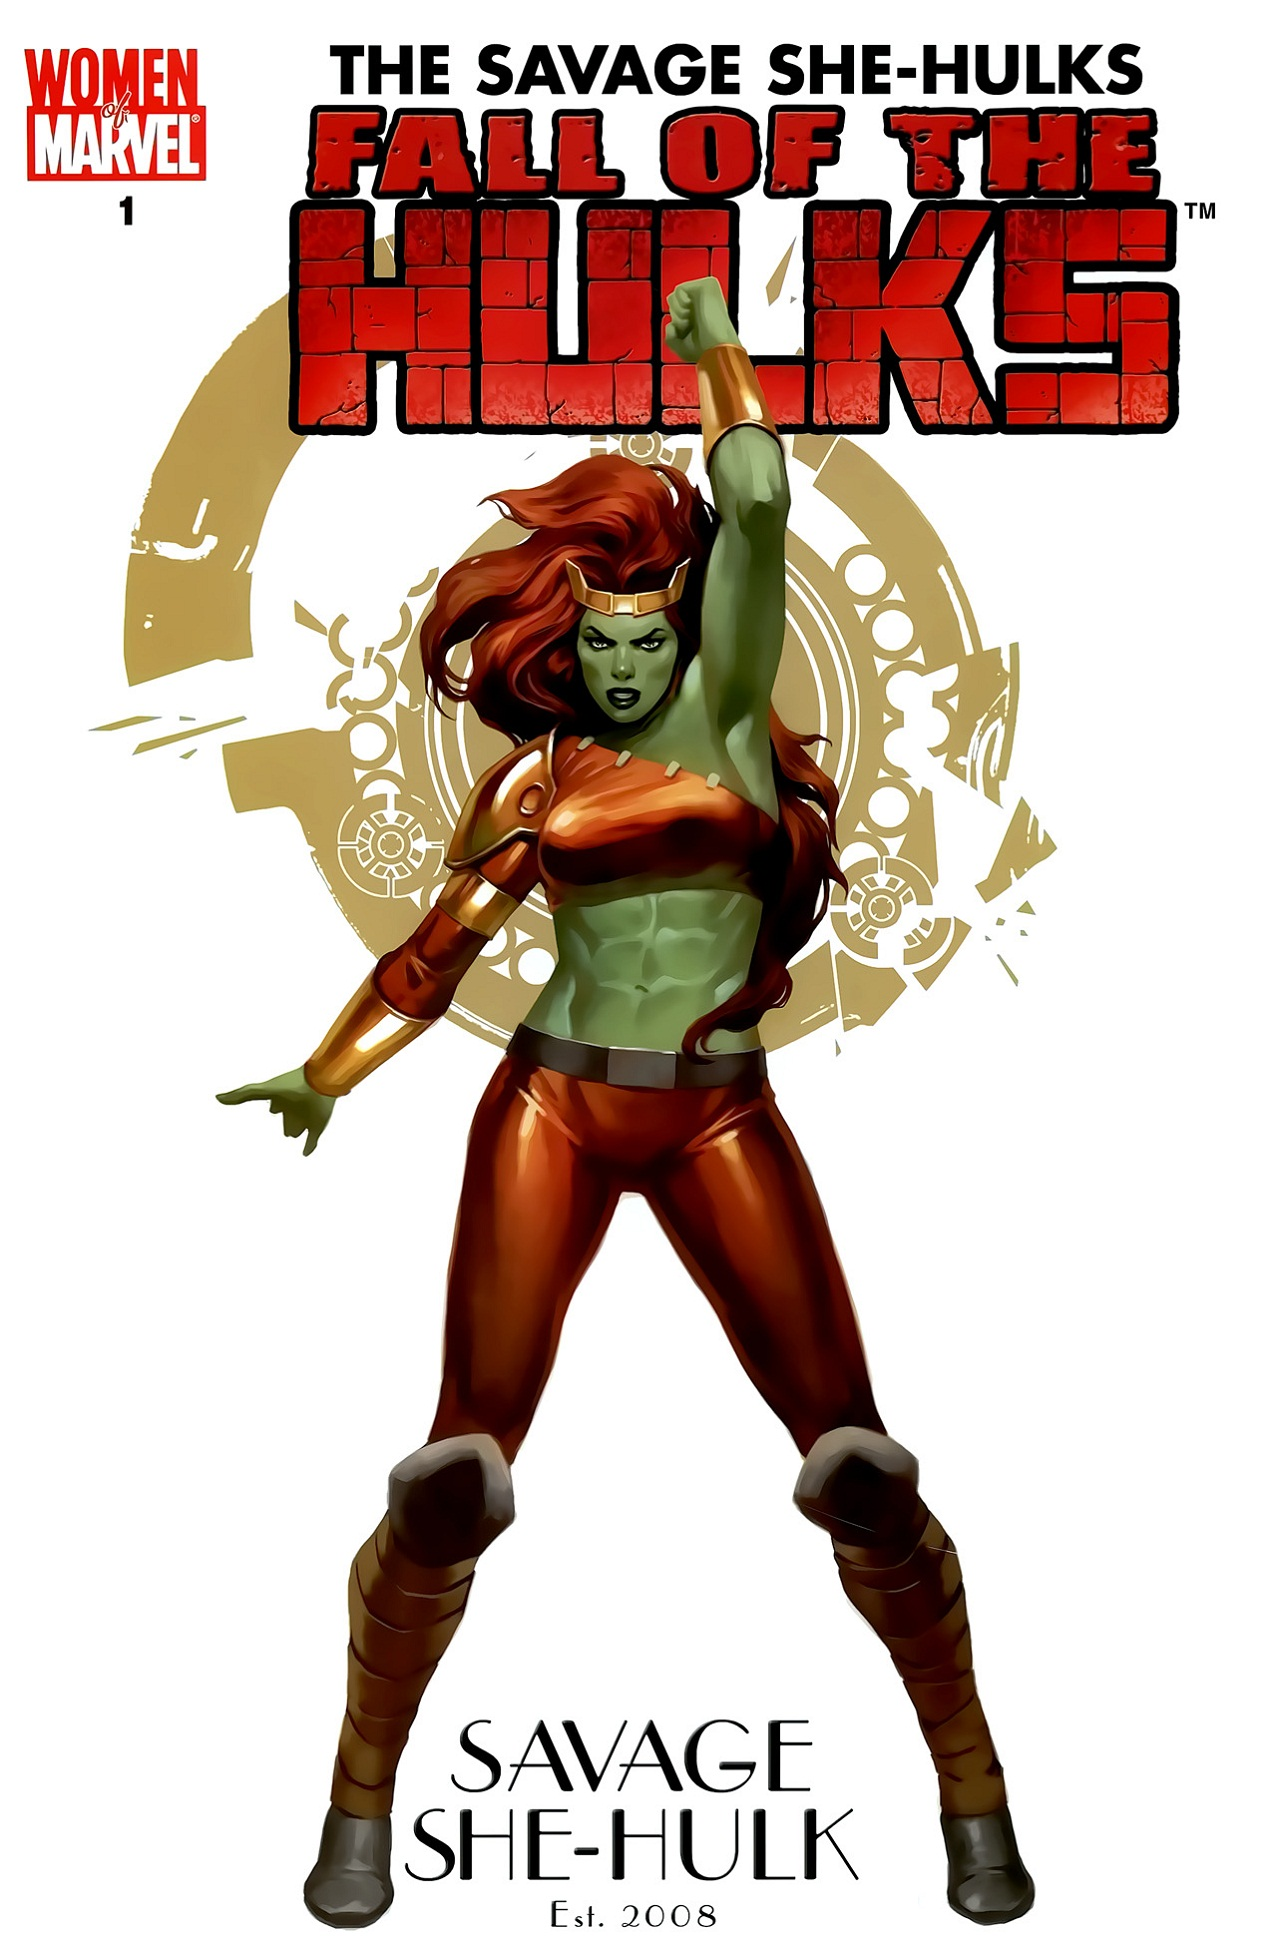 Fall of the Hulks The Savage She-Hulks Vol 1 1 Women of Marvel Variant.jpg